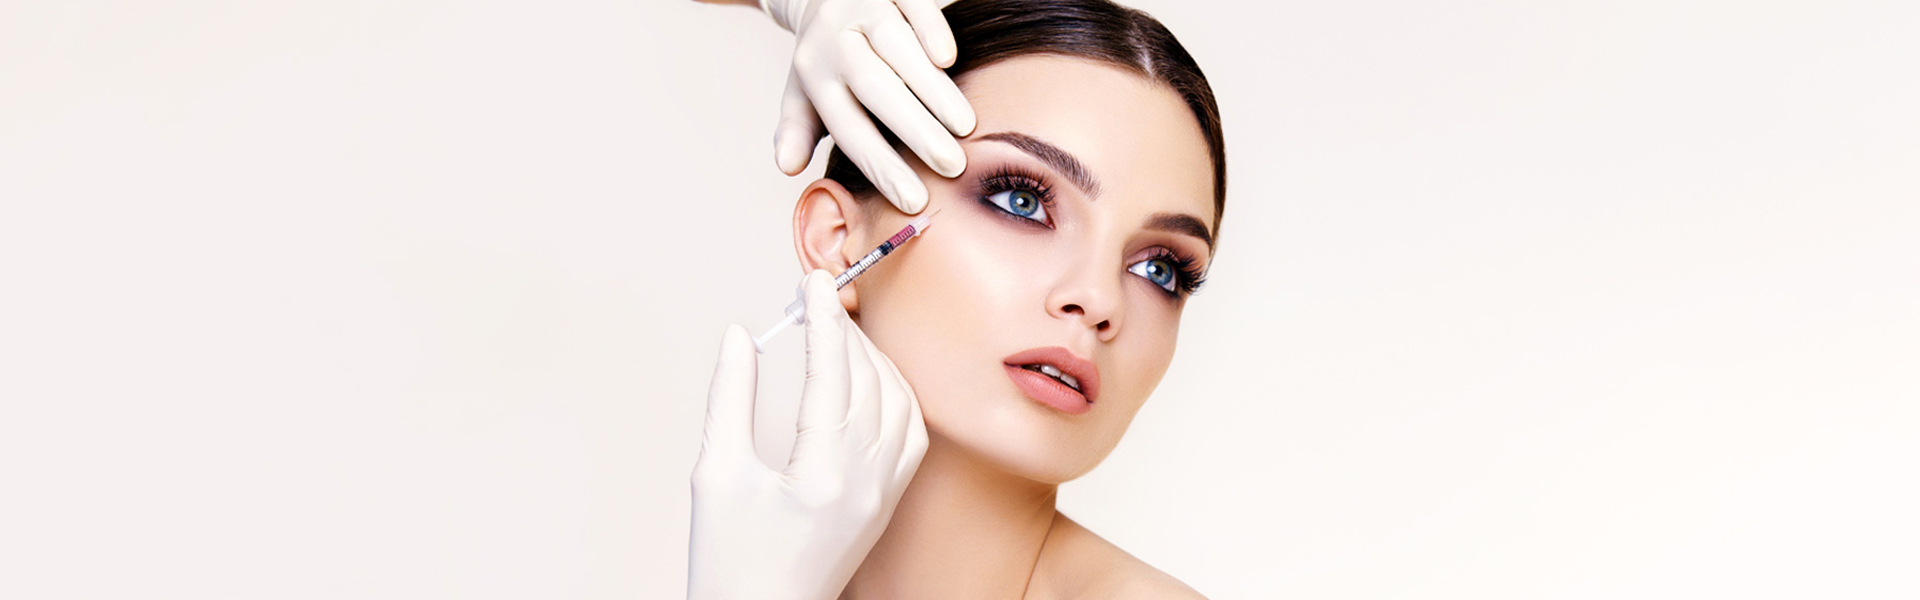 The Leading Medical Aesthetic Procedures